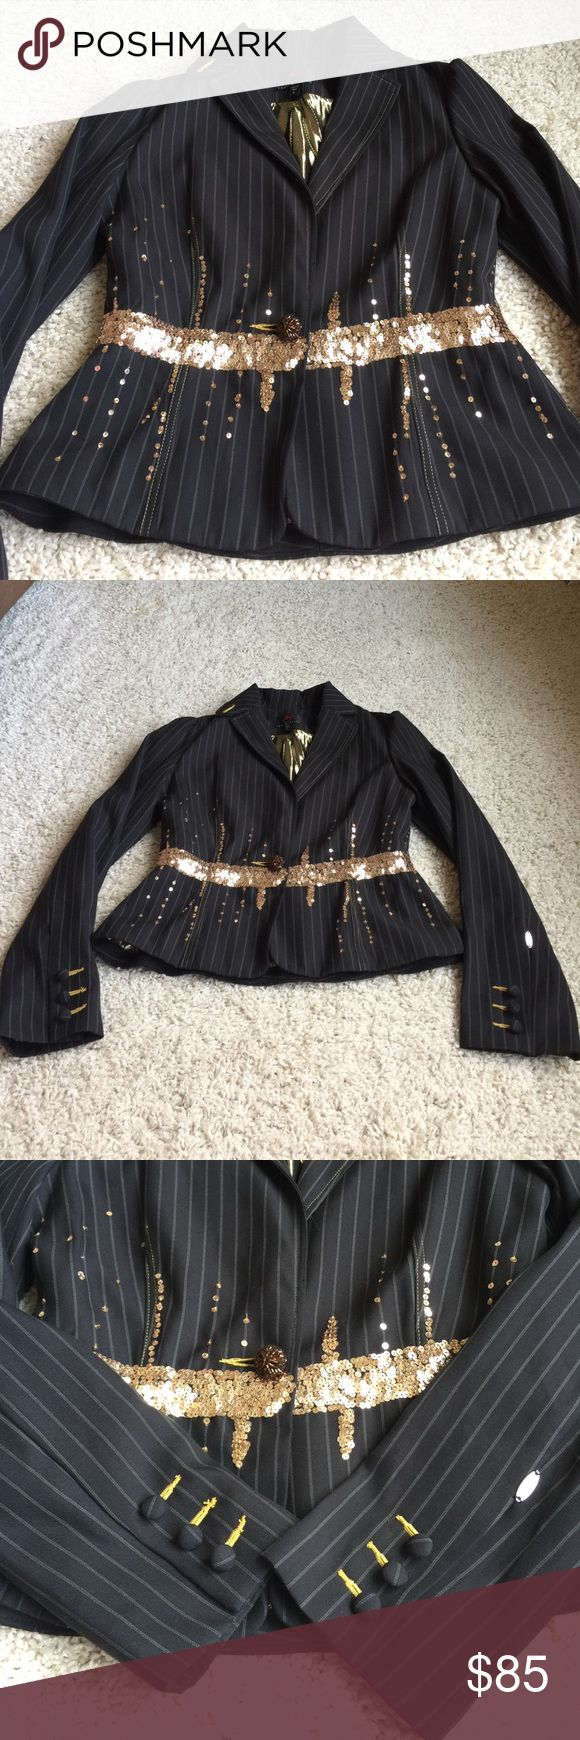 Gold sequin jacket This beautiful black and white pinstripe jacket with gold sequin detail on the front of the jacket, around the waist of the jacket and the back of the jacket is beautiful. There is a gold beaded button to close the front of the jacket. The inside is gold and red and black stripes. The brand is True Meaning and it is a women's size 6. This is perfect for the holidays! True Meaning Jackets & Coats